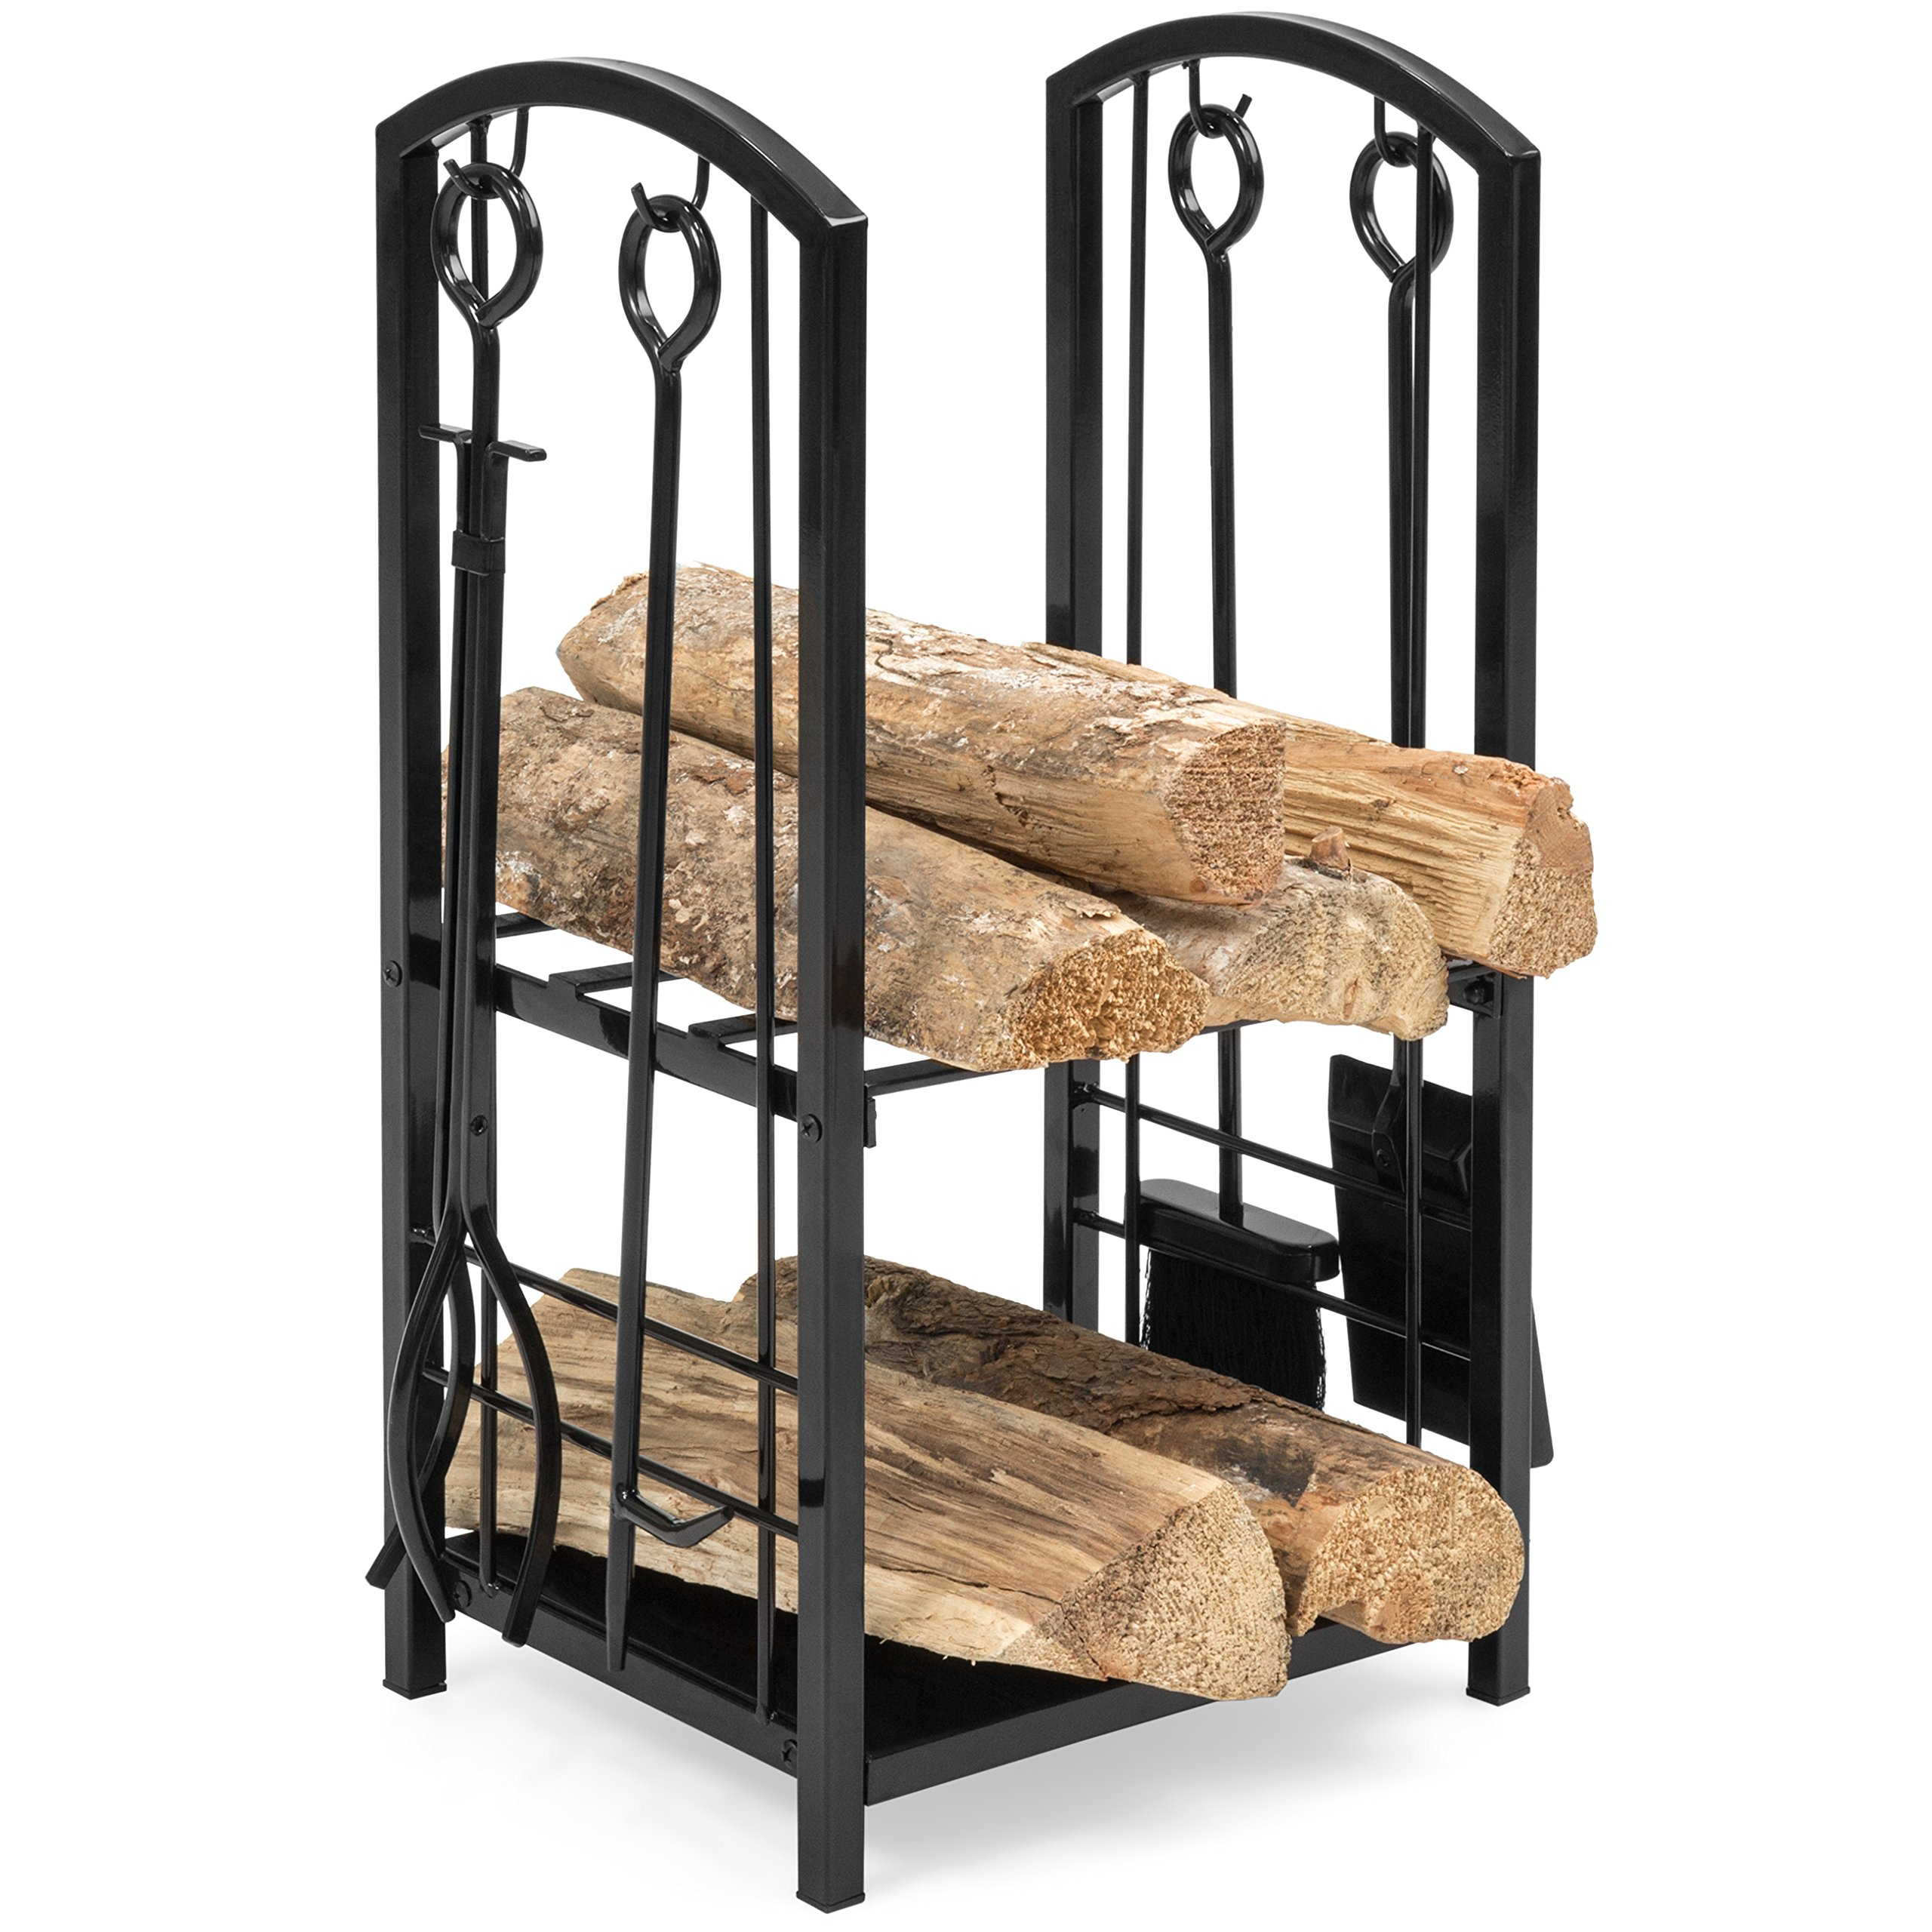 Best Choice Products 5-Piece Wrought Iron Firewood Log Storage Rack Holder Tools Set for Fireplace, Stove with Hook, Broom, Shovel, Tongs by Best Choice Products